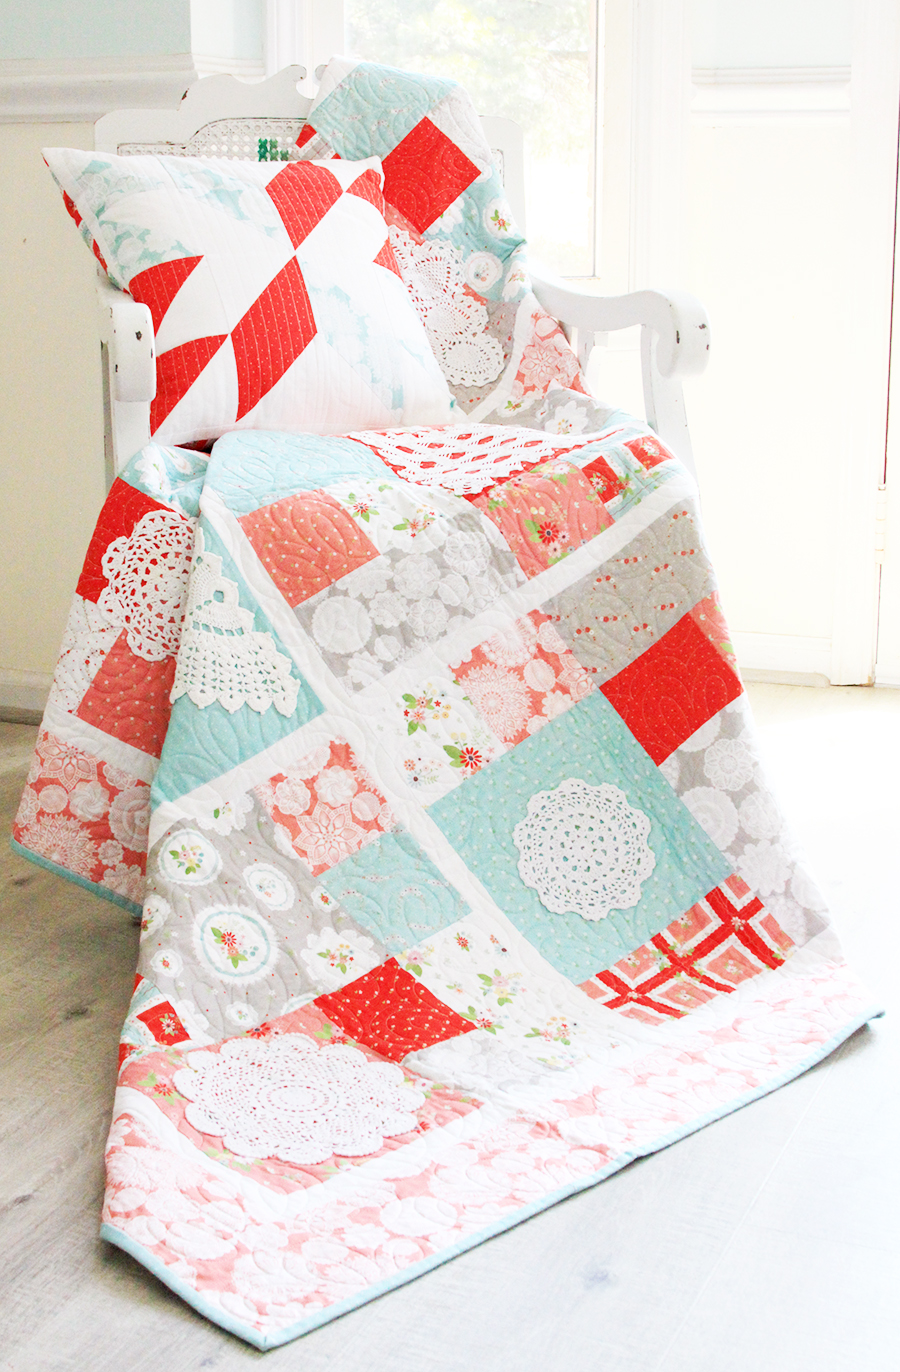 2019 Top Ten Quilting and Sewing Projects! by popular Tennessee quilting blog, Flamingo Toes: image of a vintage doily keepsakes quilt.